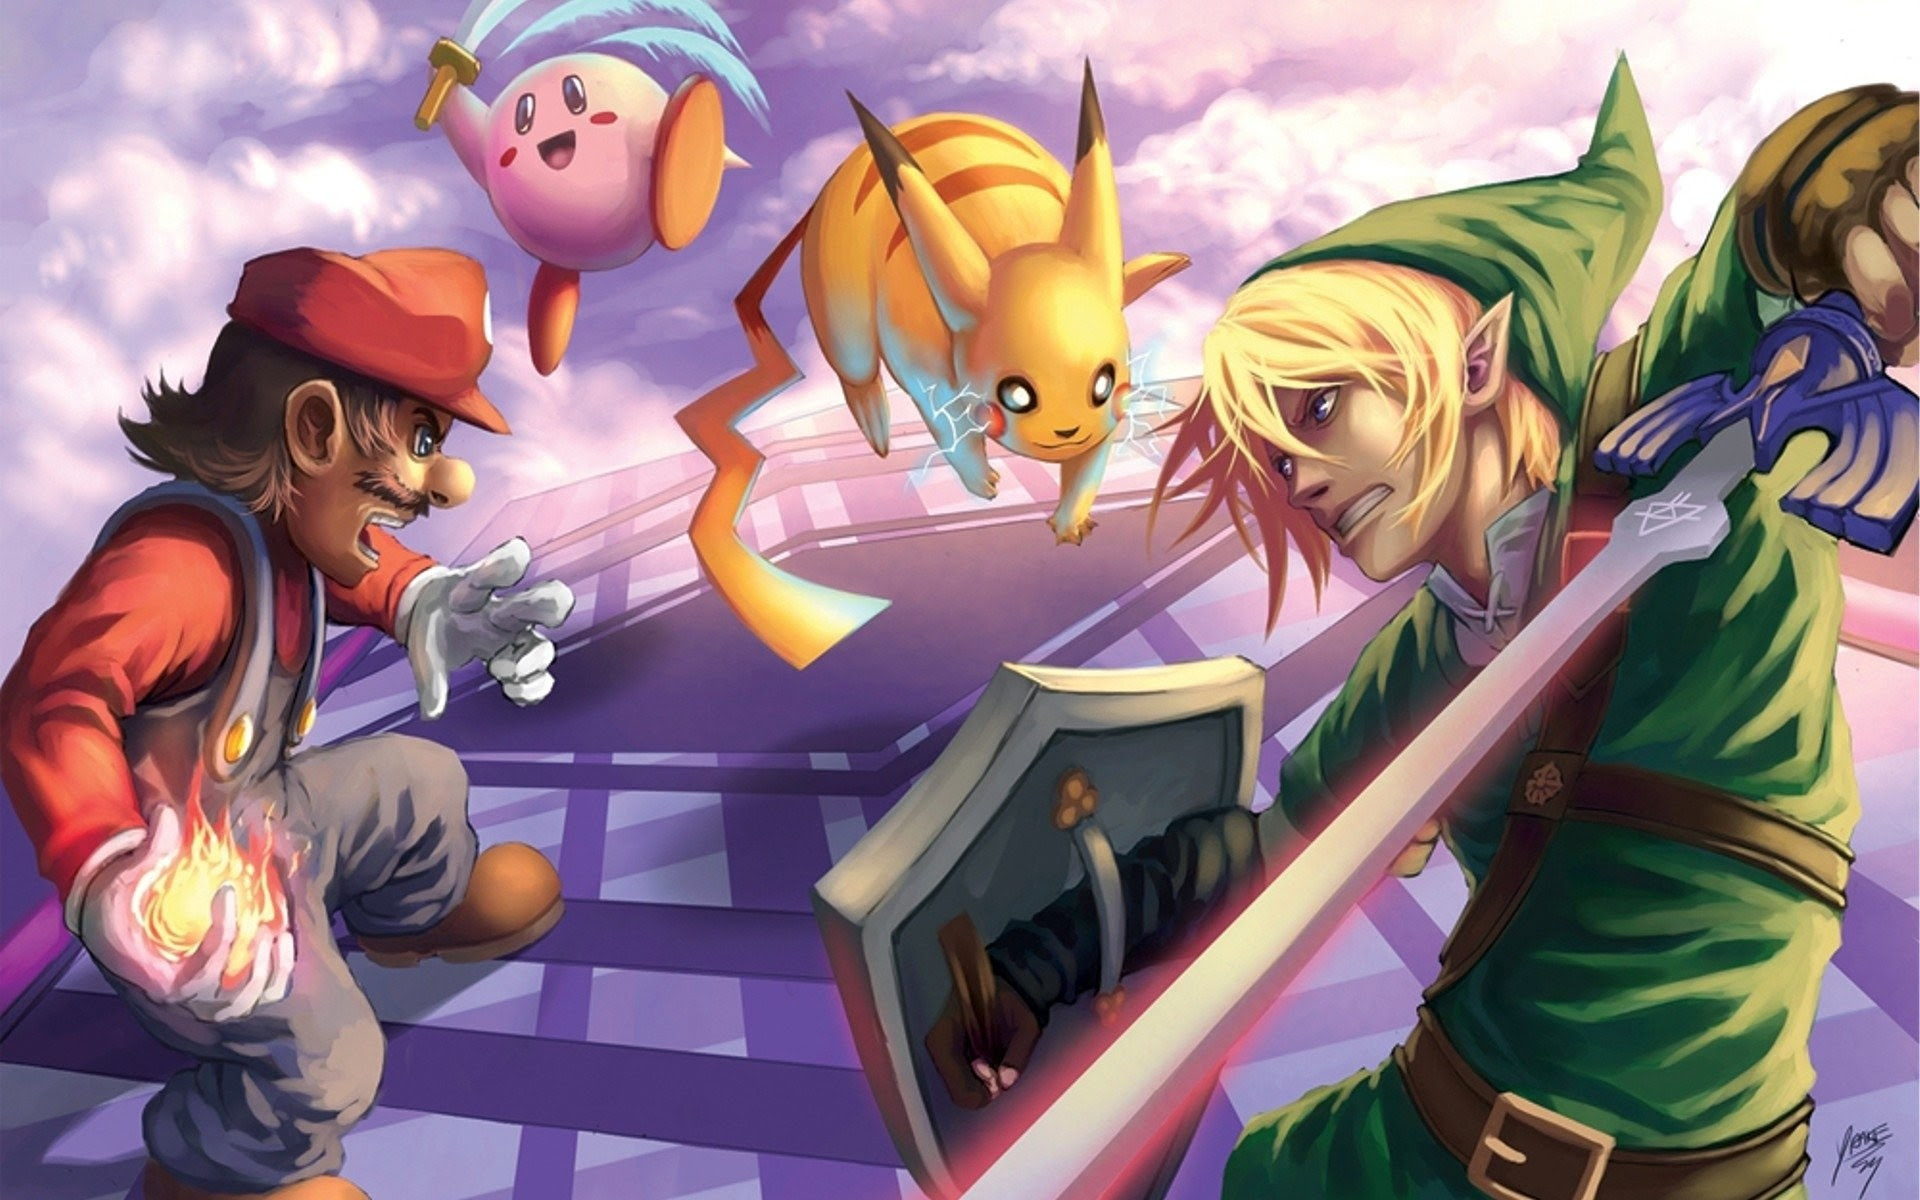 Super Smash Bros Melee Wallpaper 73 Images